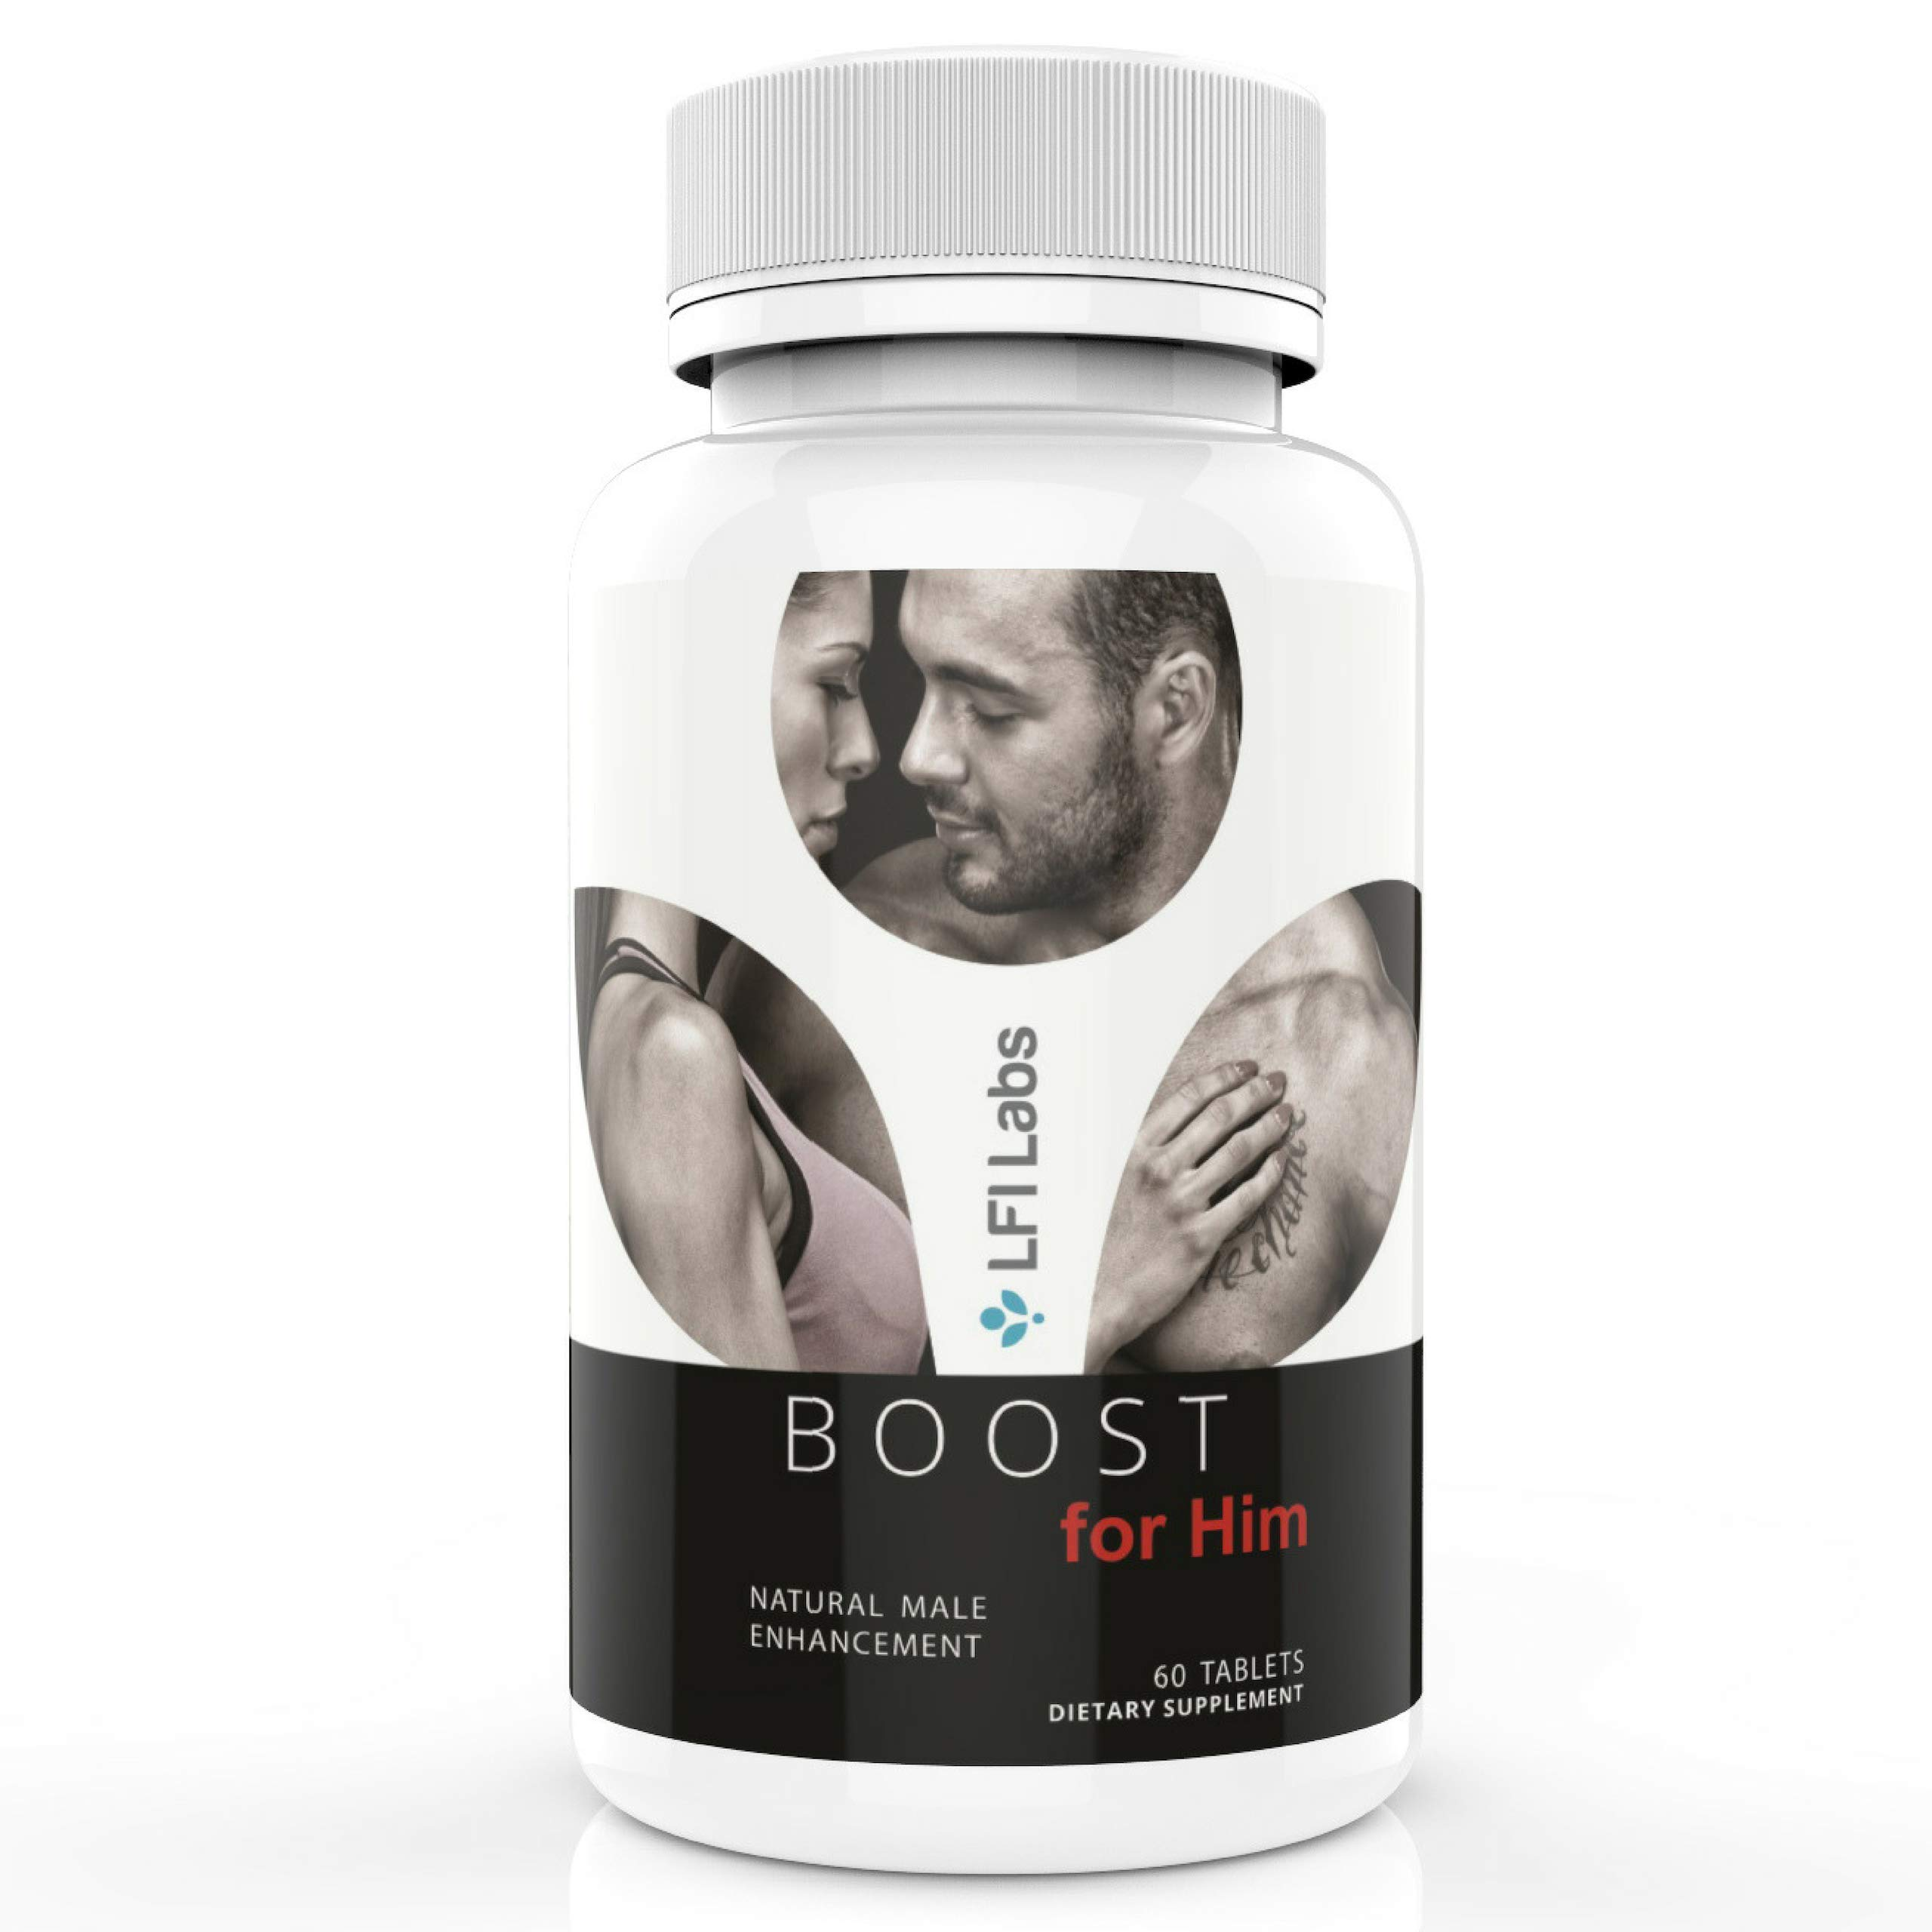 Boost For Him — Premium Enhancement Formula for Men with Tongkat Ali and Maca for a Maximum Strength Boost, Energy, Endurance | 60 Tablets by LFI Labs (Image #1)